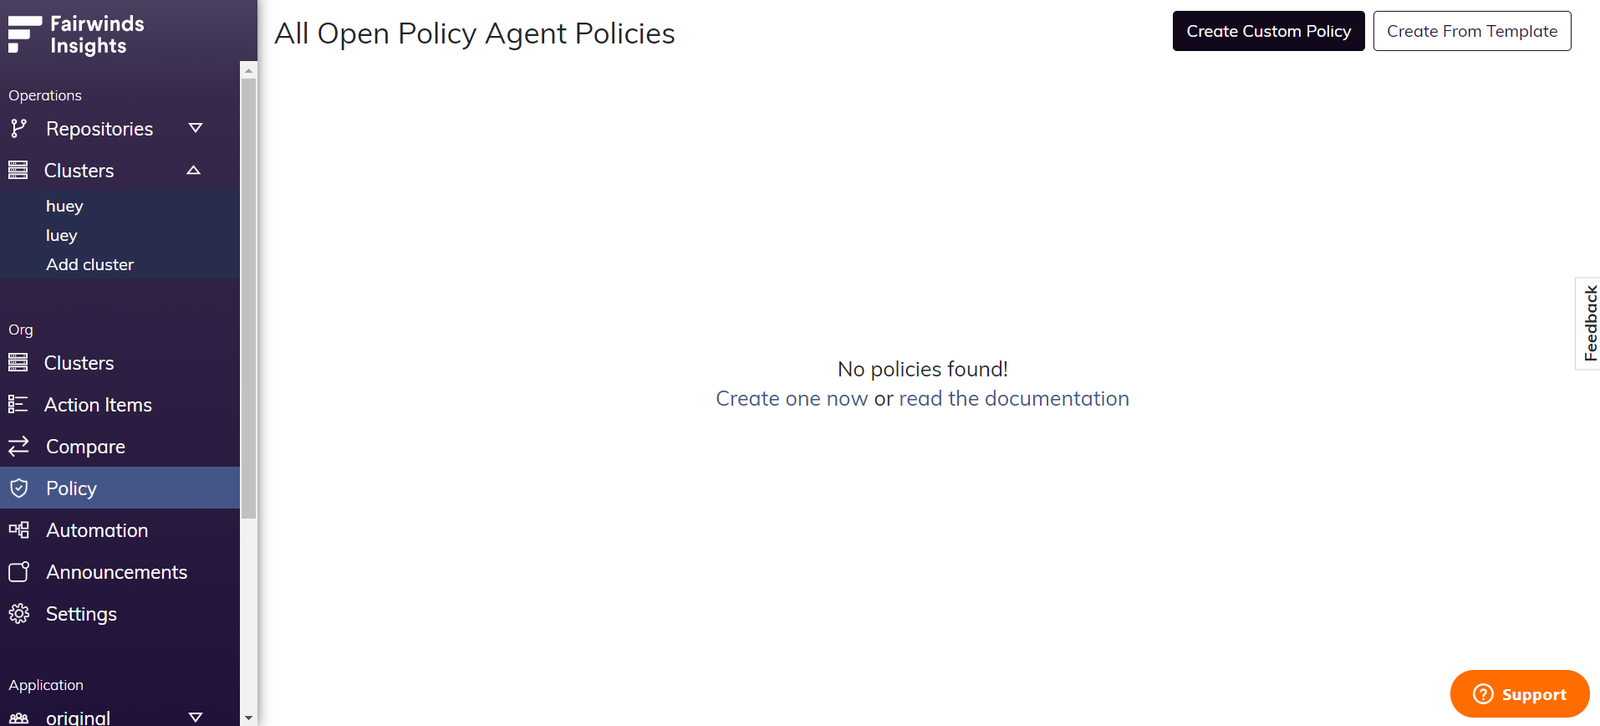 All Open Policy Agent Policies